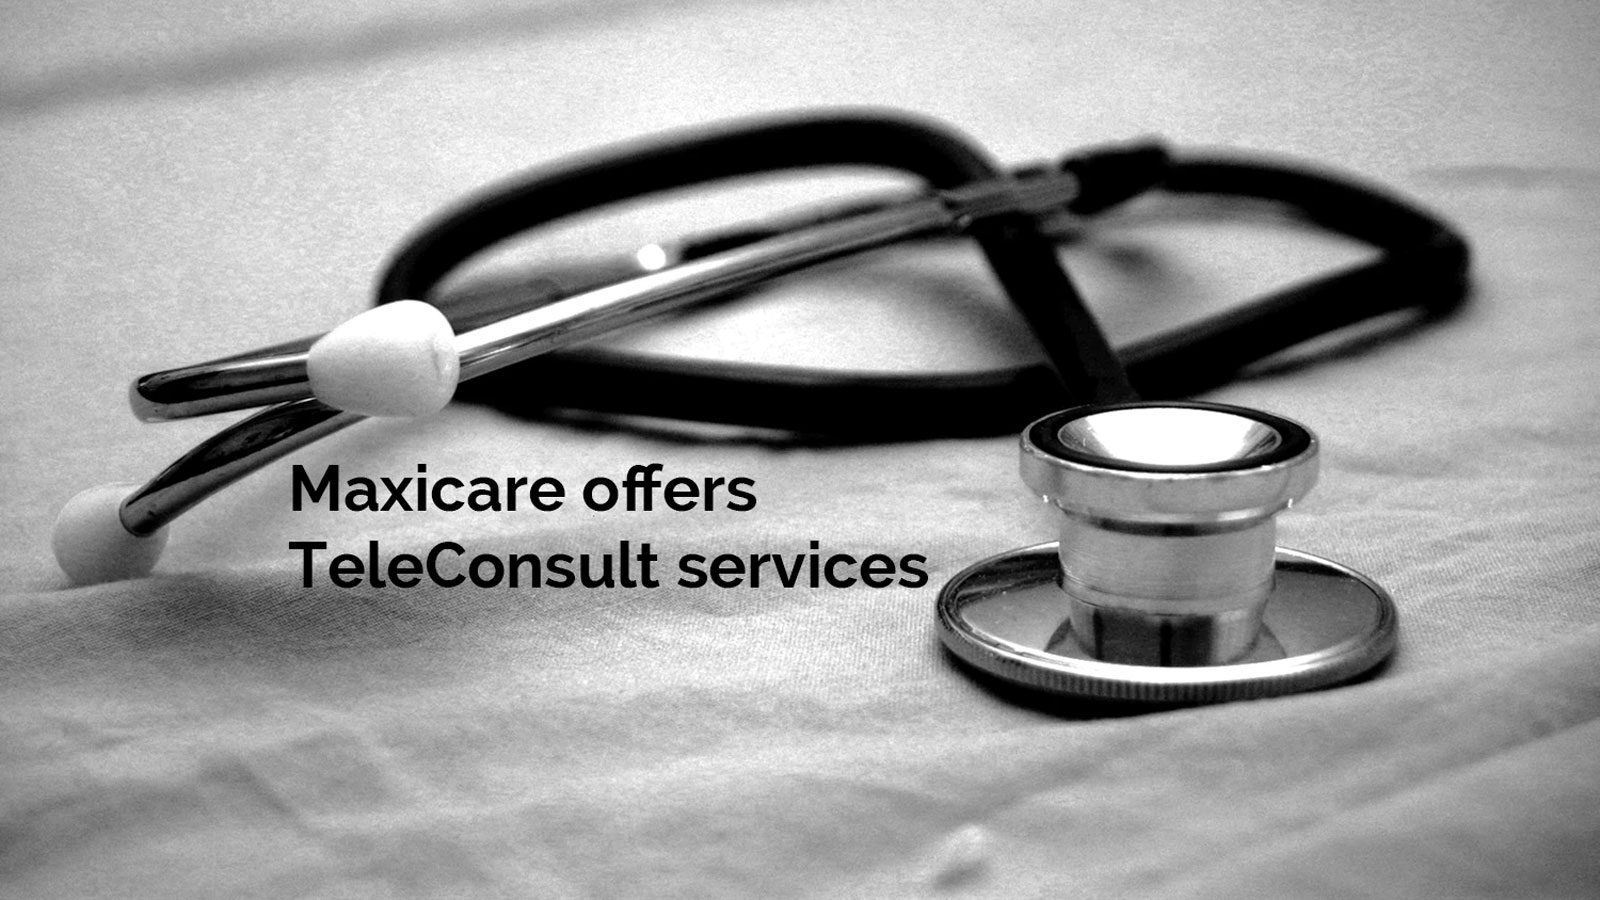 Why you should teleconsult with Maxicare